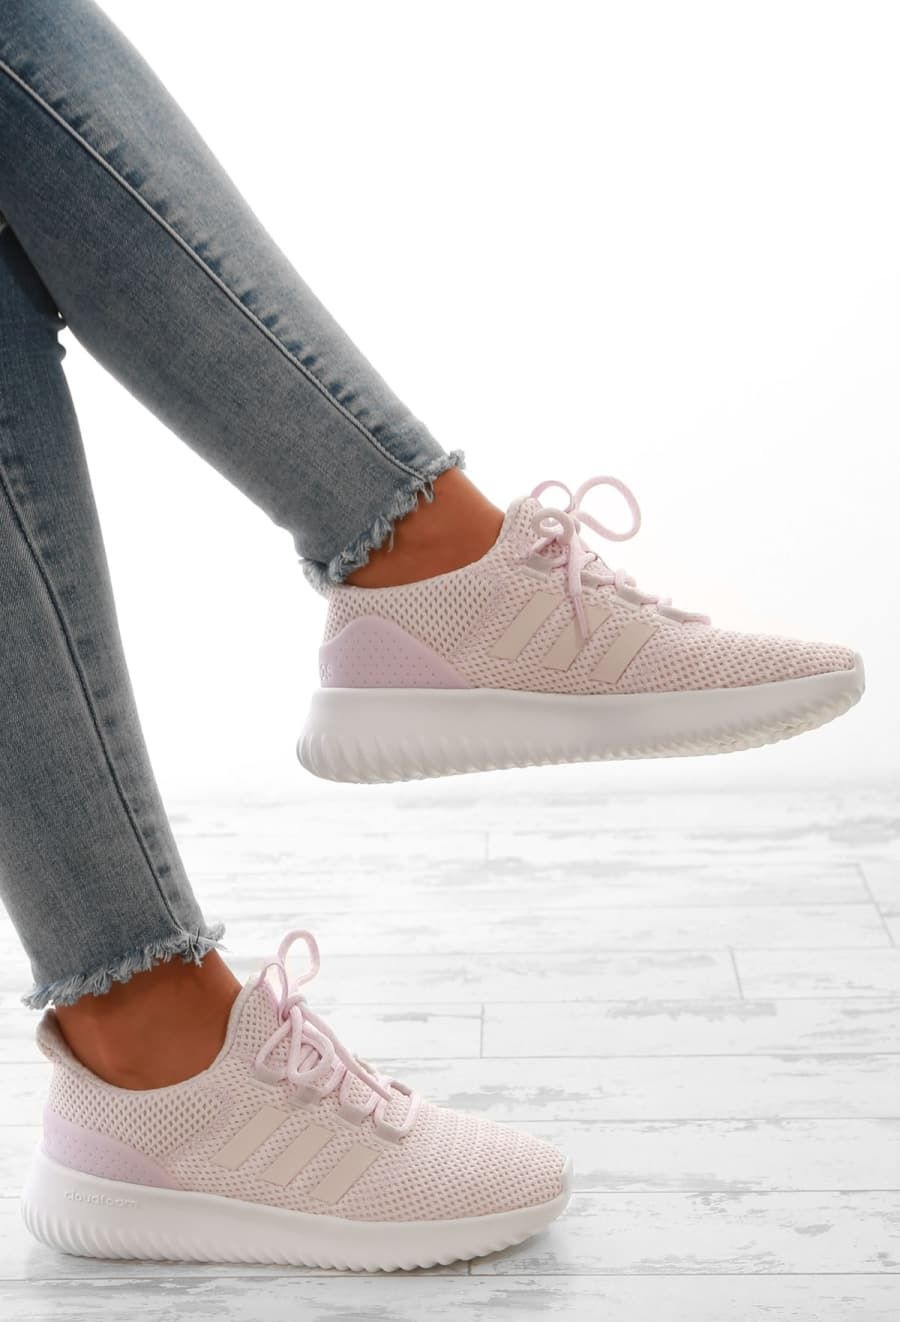 Adidas Pink Cloudfoam Ultimate Trainers - UK 3.5 | Pink ...